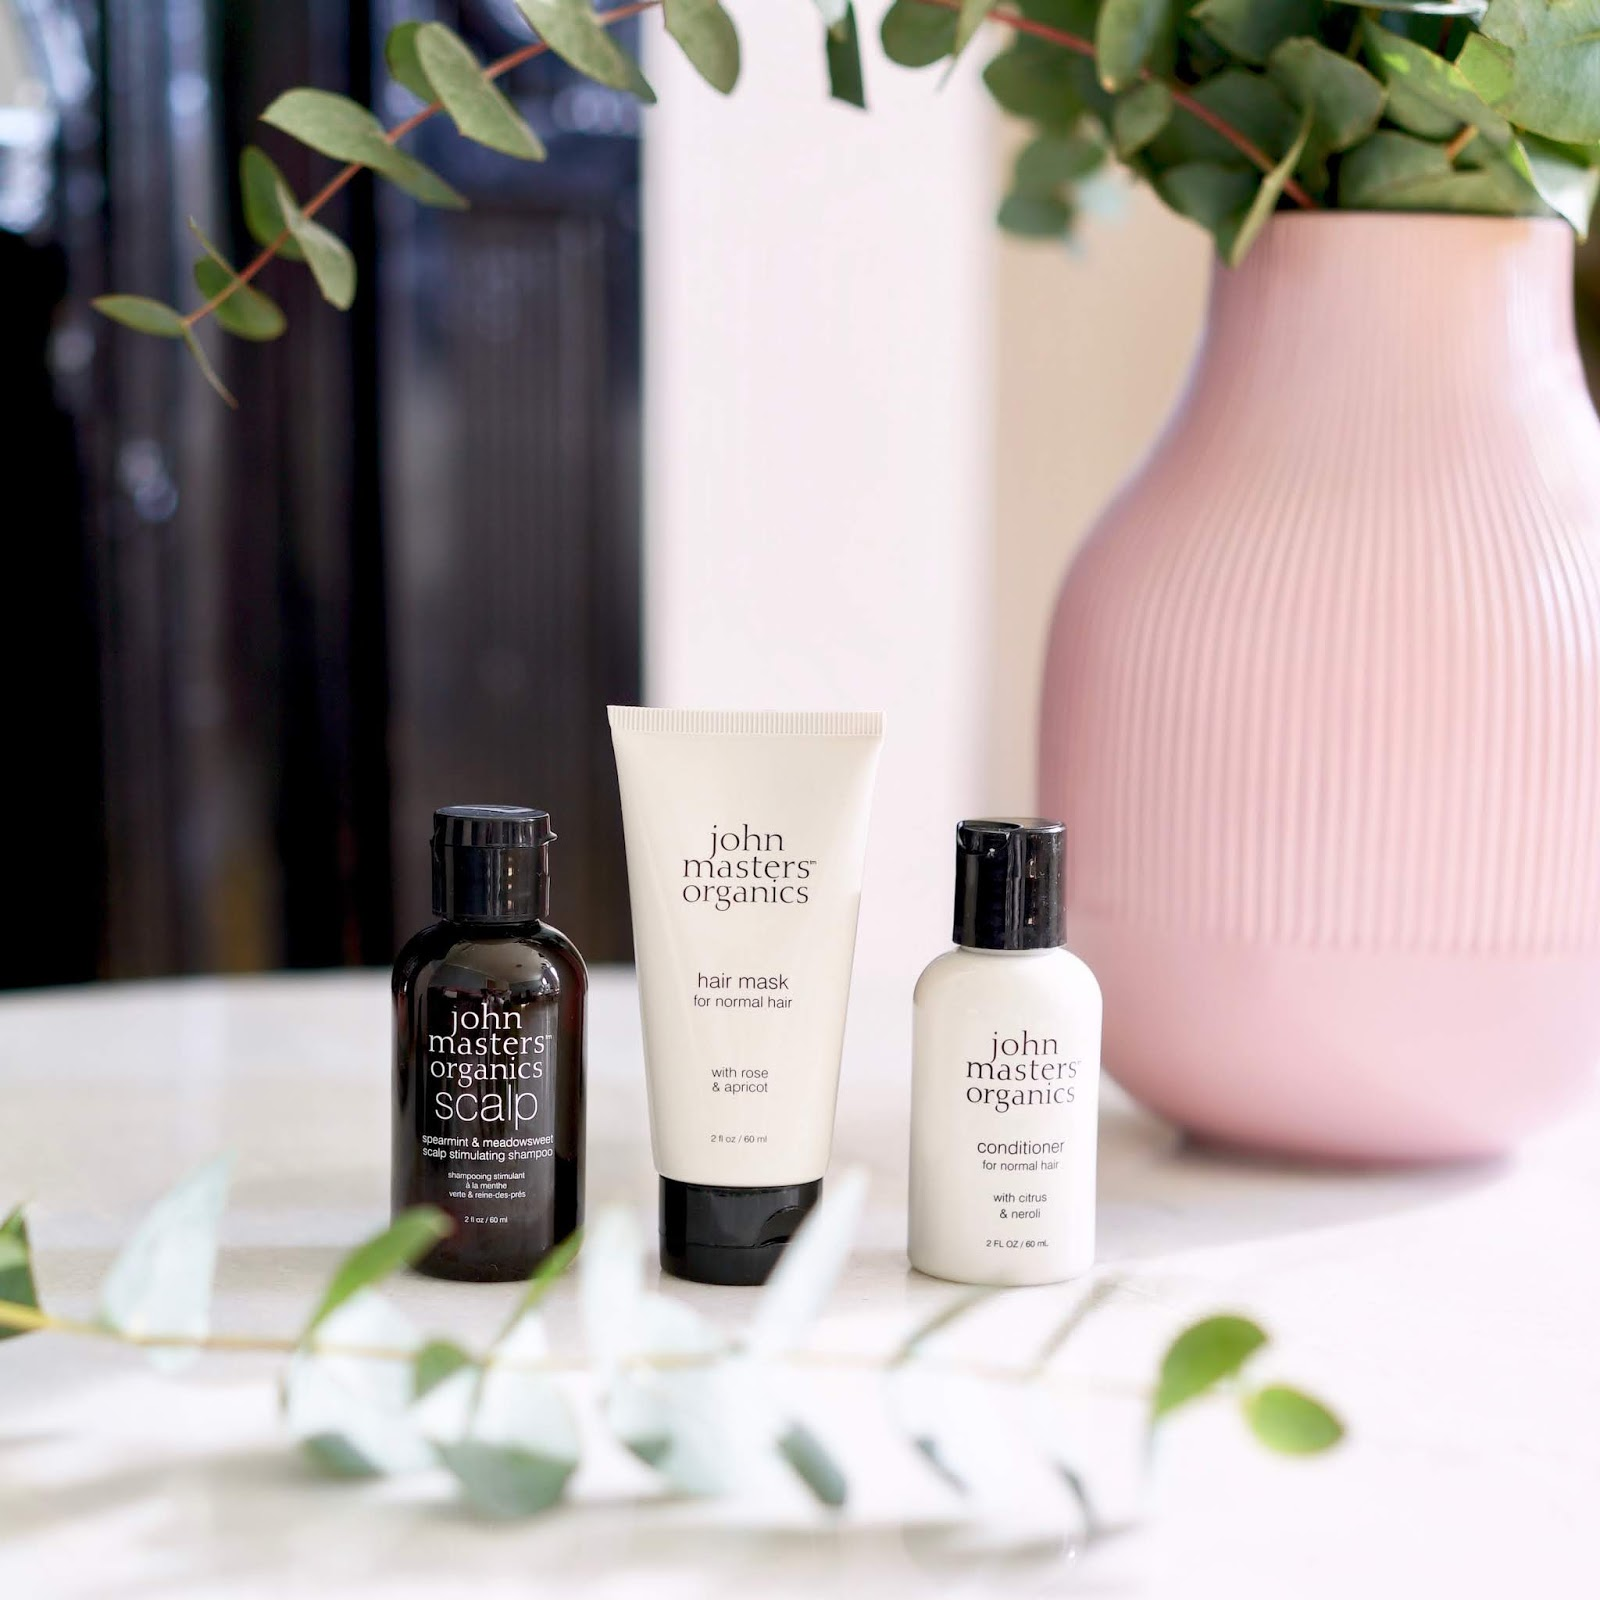 PRODUCTS FOR THINNING & FINE HAIR FROM JOHN MASTERS ORGANICS